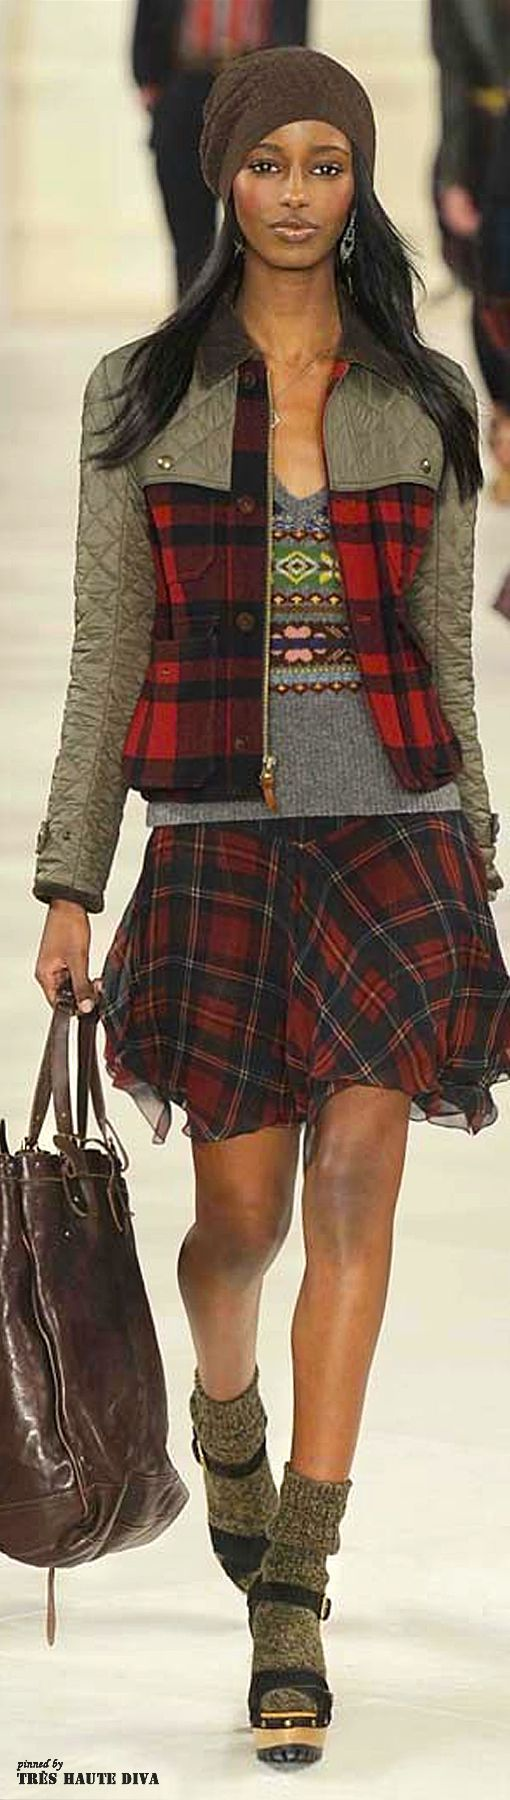 tartans for women by ralph lauren runway | Polo by Ralph Lauren Fall/Winter 2014 RTW http://www.wwd.com/runway ...